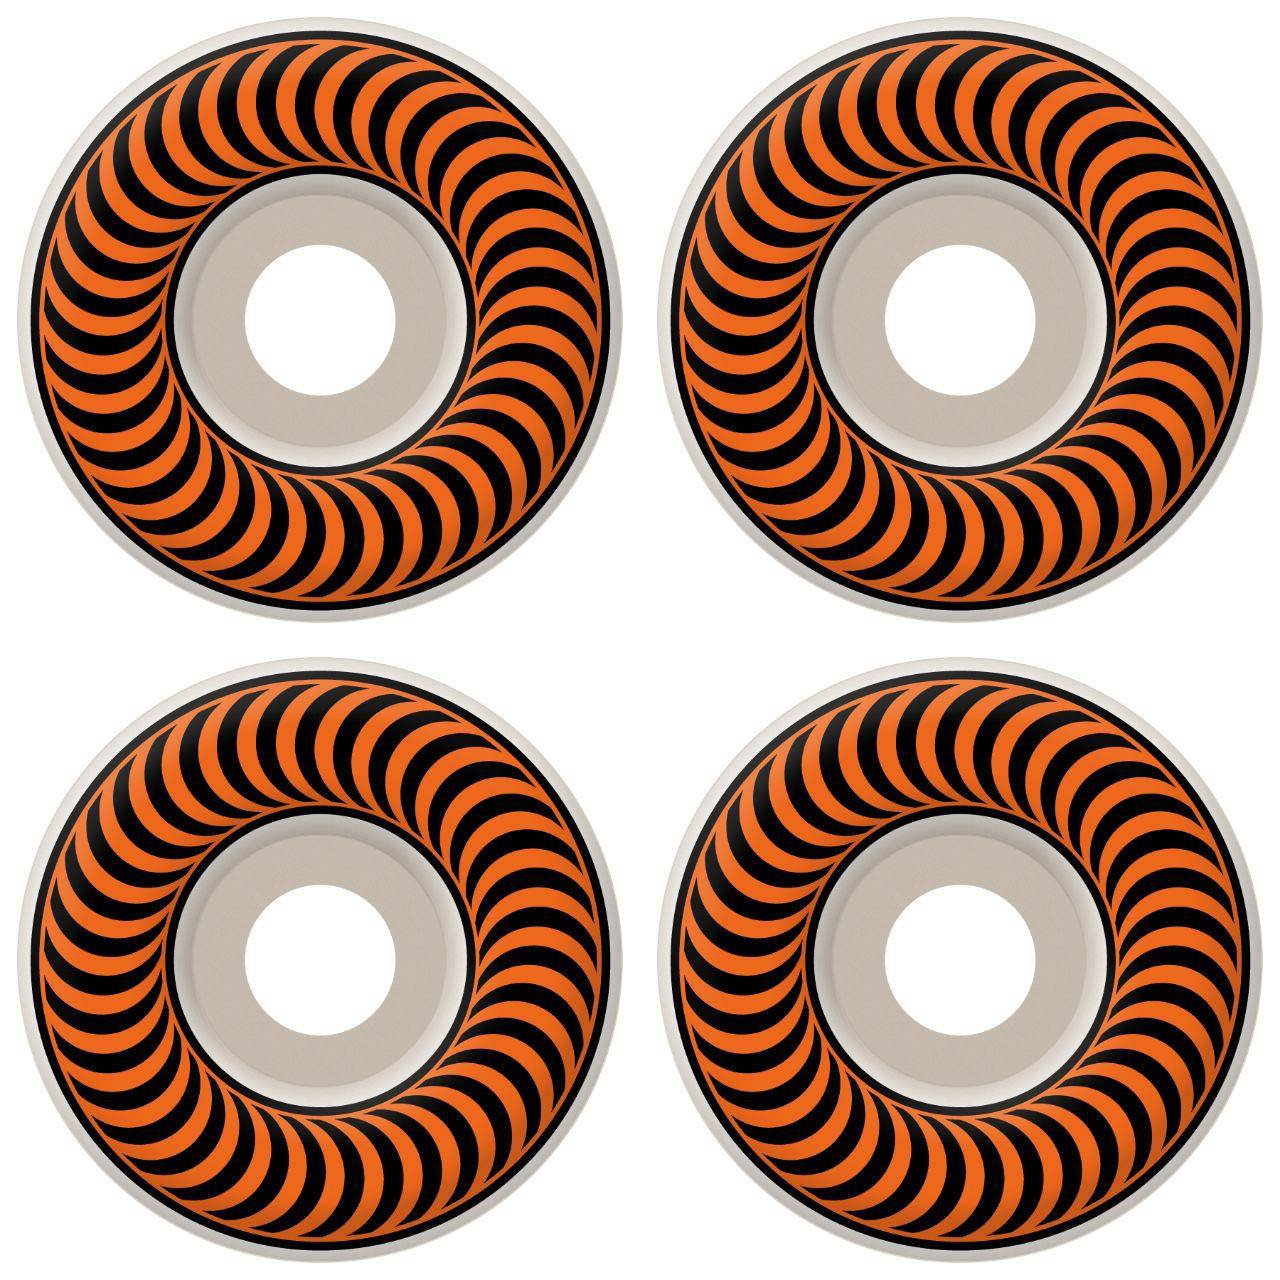 Spitfire Classic Series 53mm High Performance Skateboard Wheel (Set of 4) by Spitfire